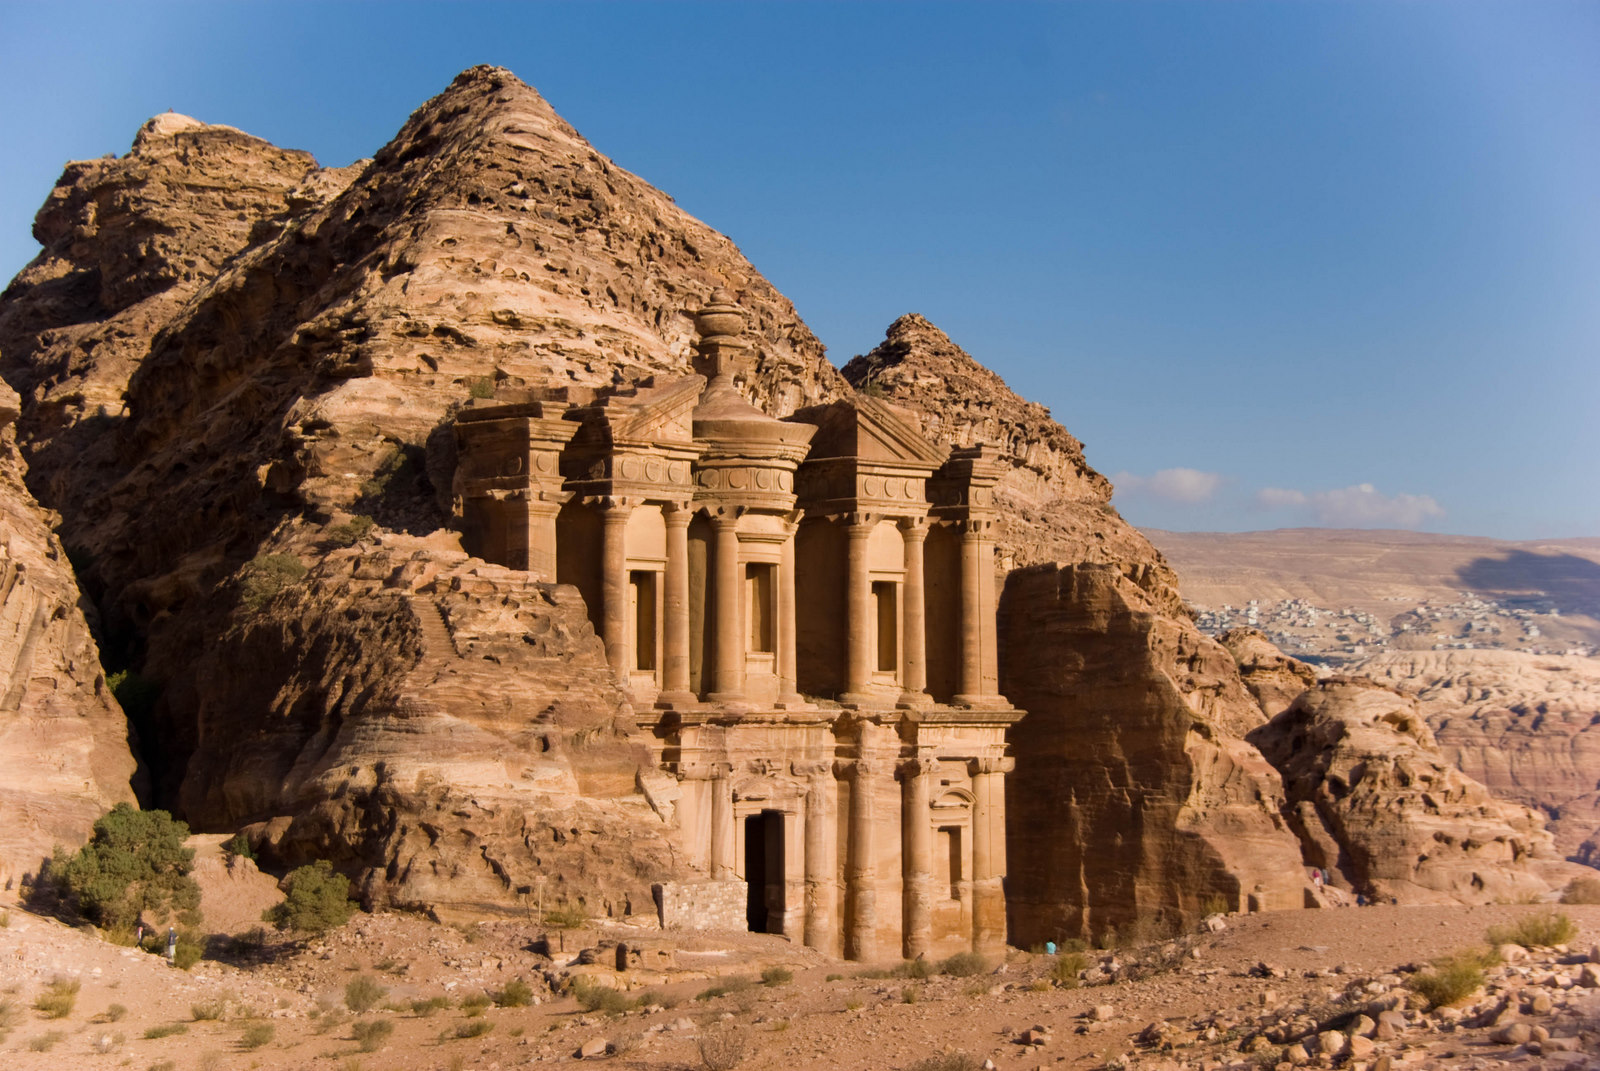 Petra Rock Is An Archaeological And Historical City In Jordan Well Known For Its Water Conduit System Cut Architecture Elished Around The